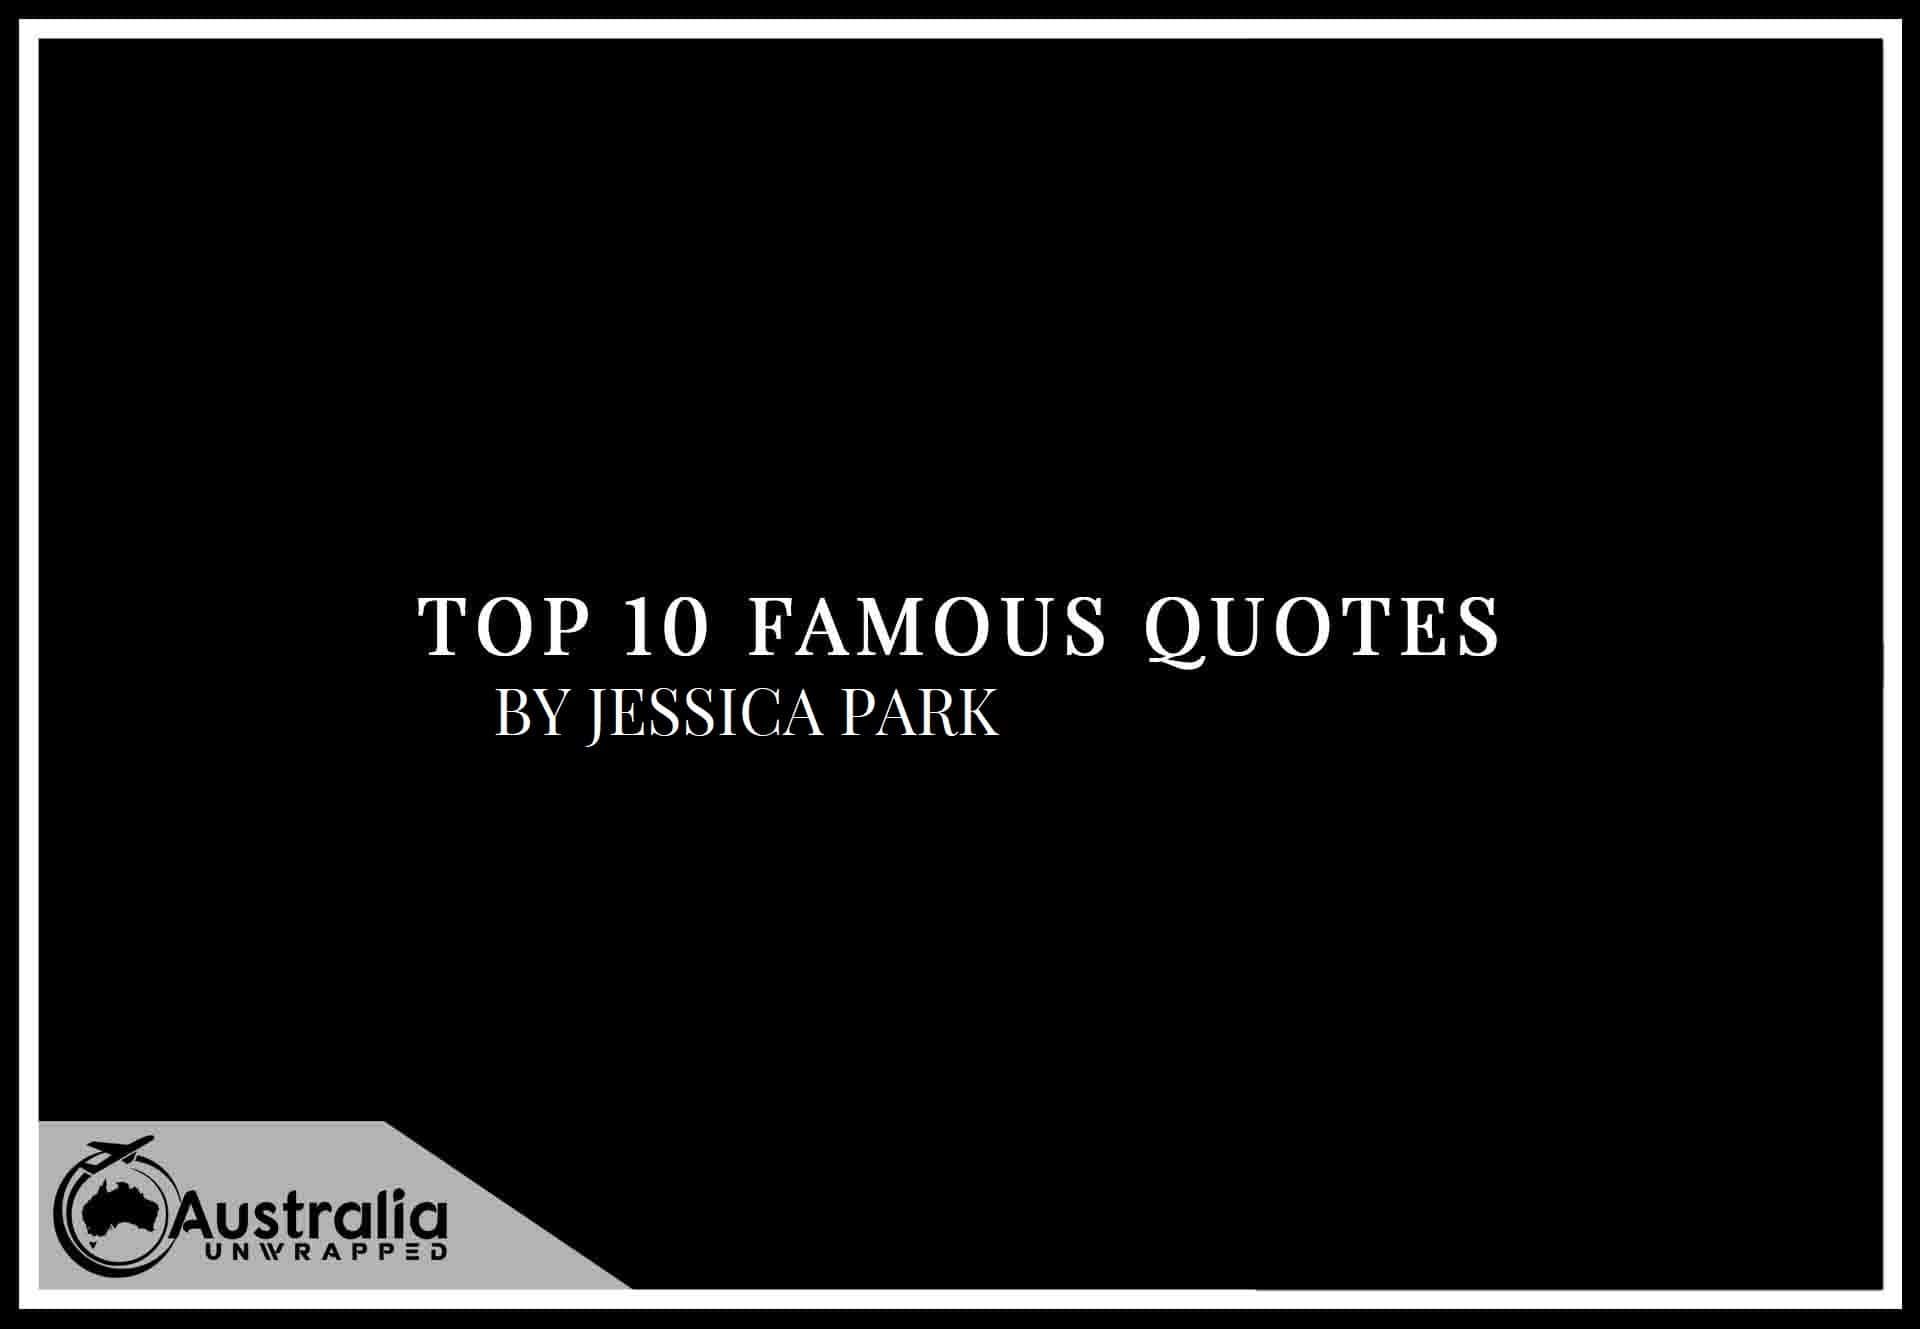 Top 10 Famous Quotes by Author Jessica Park